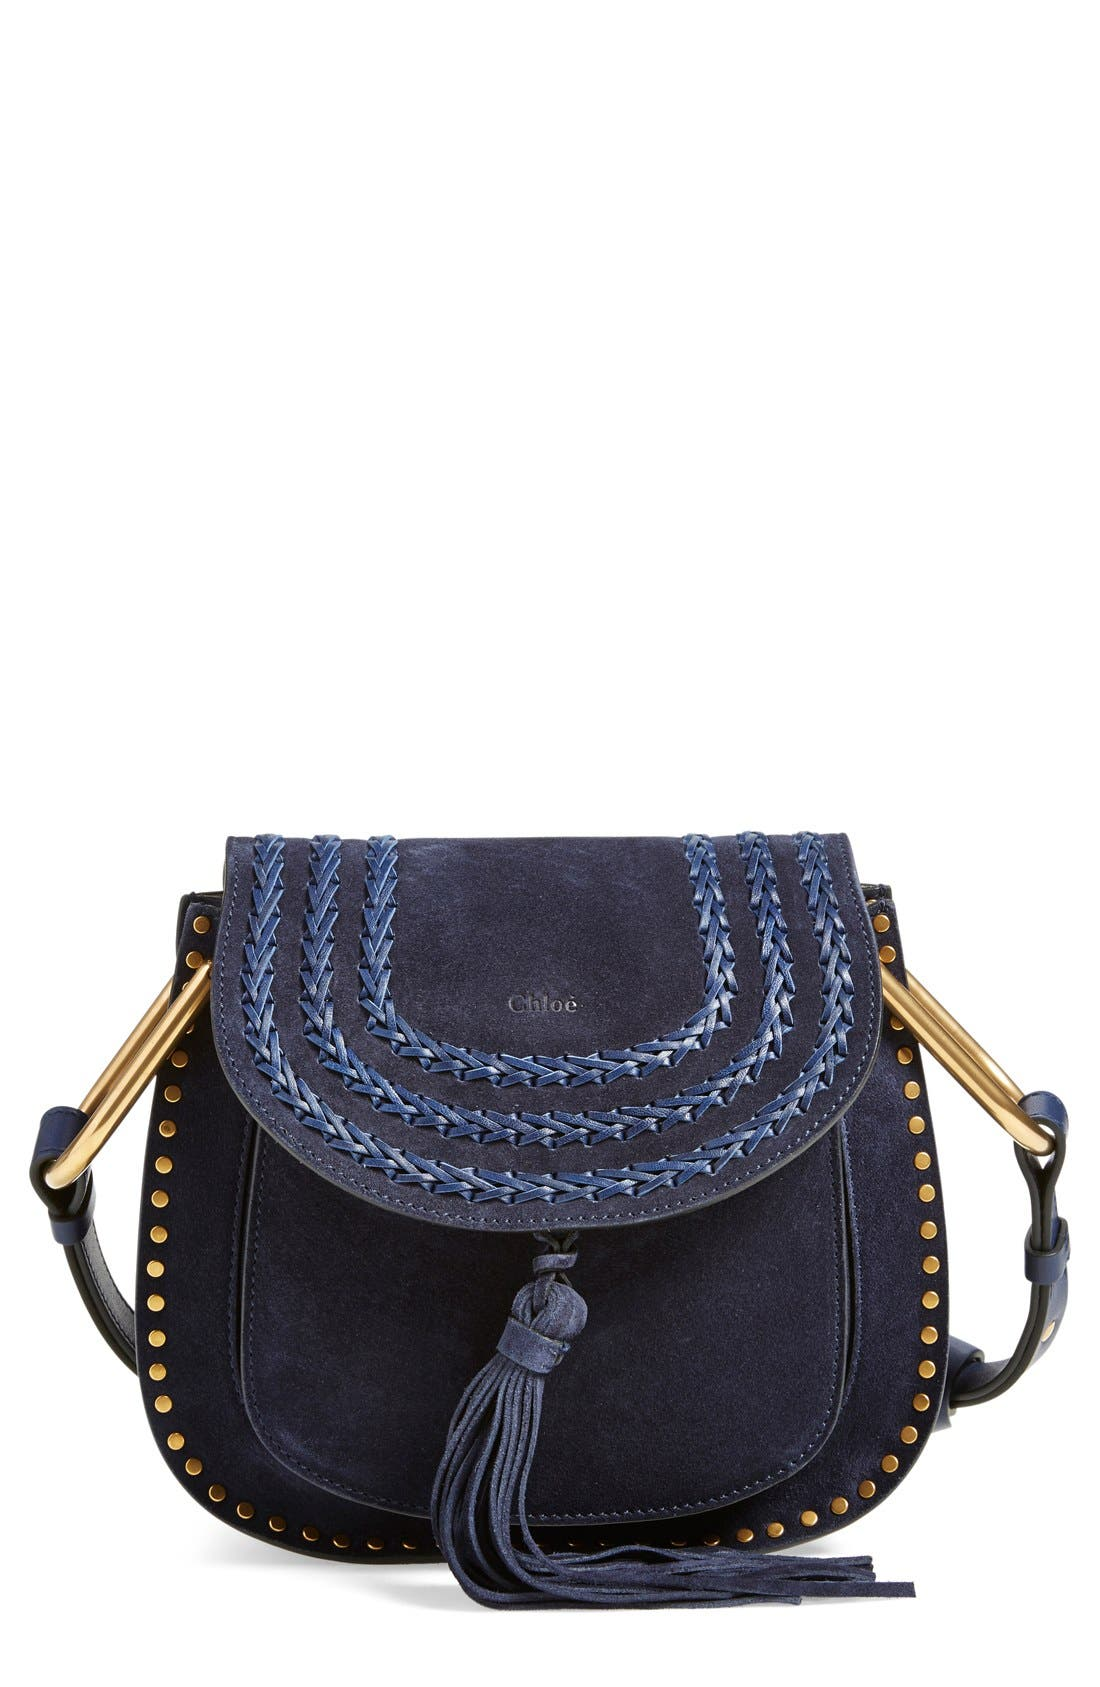 Alternate Image 1 Selected - Chloé 'Small Hudson' Shoulder Bag